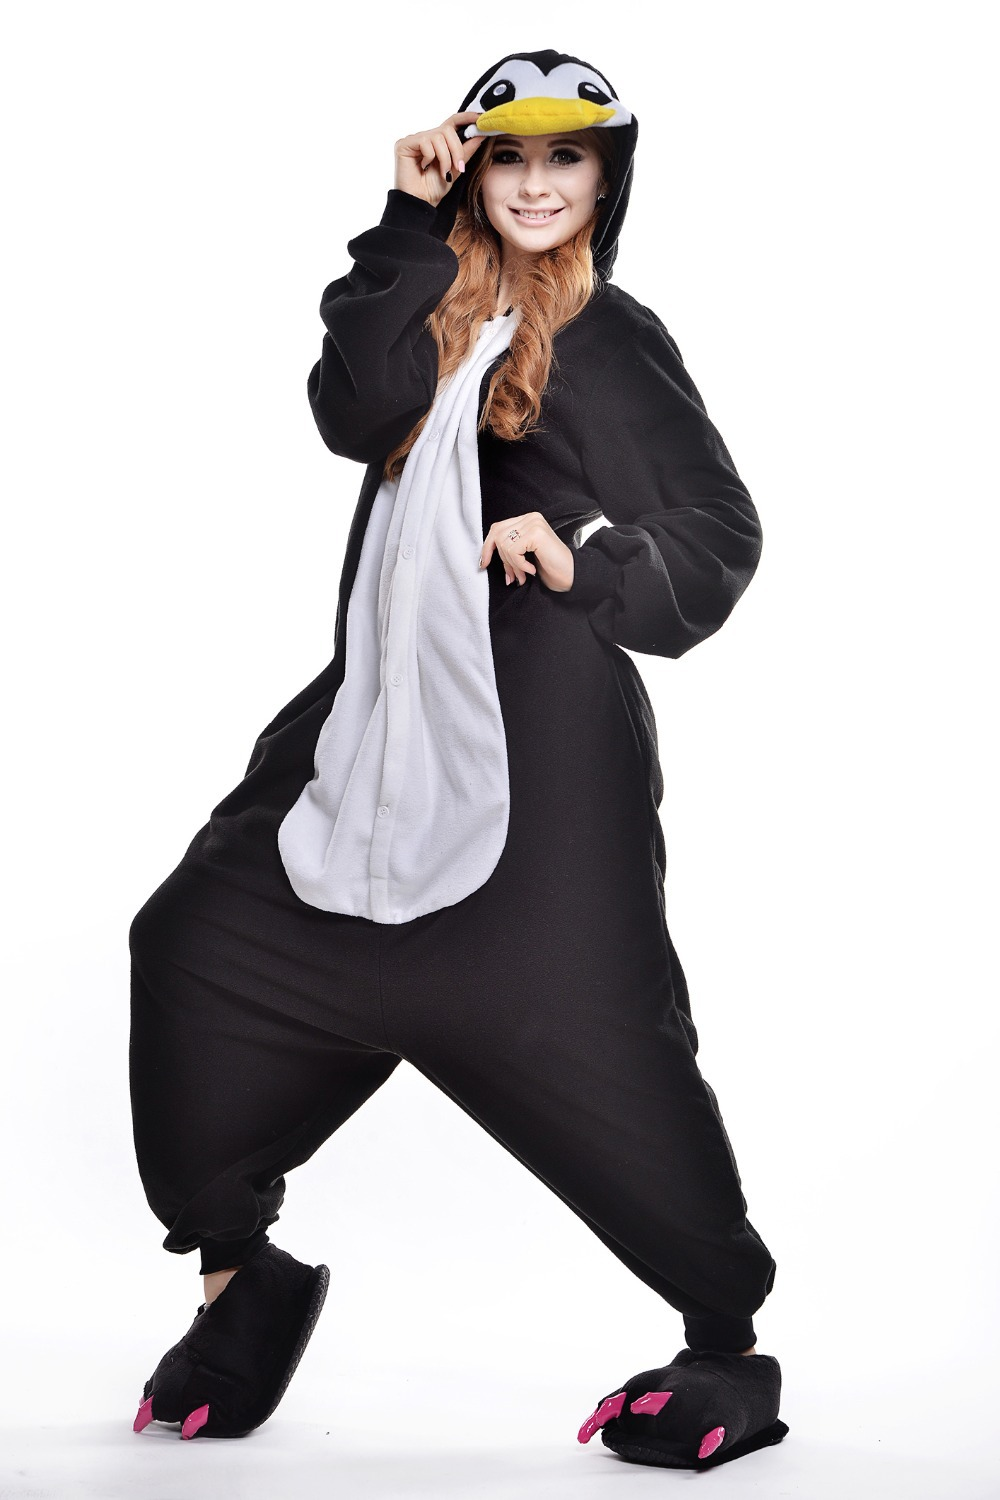 340c35ad4255 Get Quotations · Penguin Onesie  Plus Size Halloween Costume for Women   Mens Onesie  onsie   Fancy